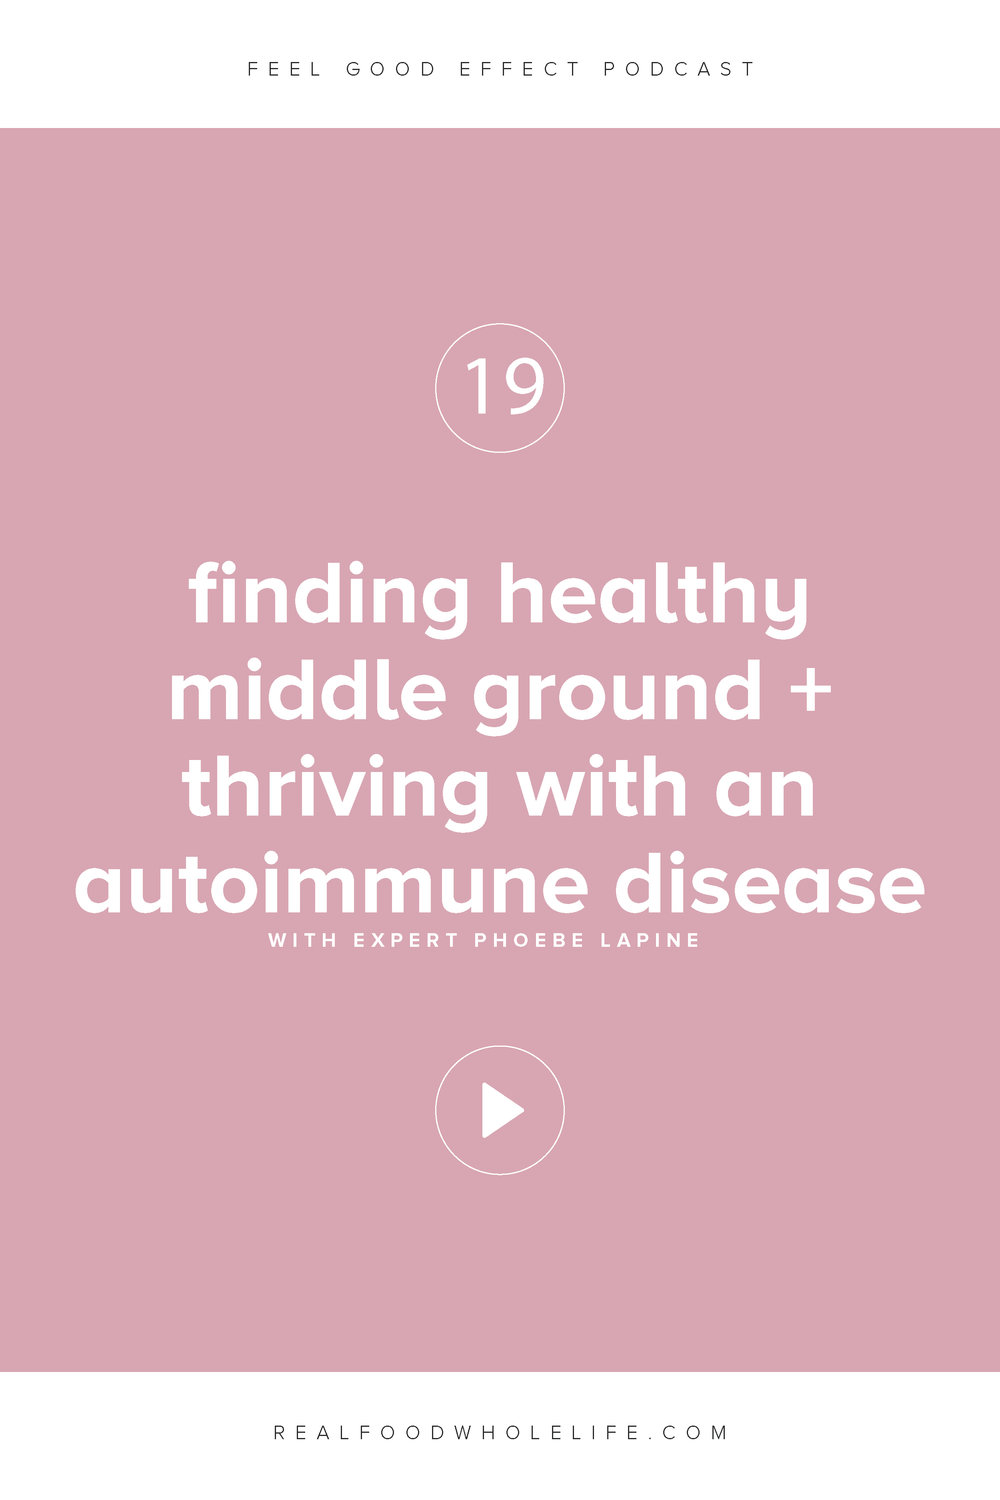 Finding Healthy Middle Ground + Thriving with an Autoimmune Disease, with Phoebe Lapine